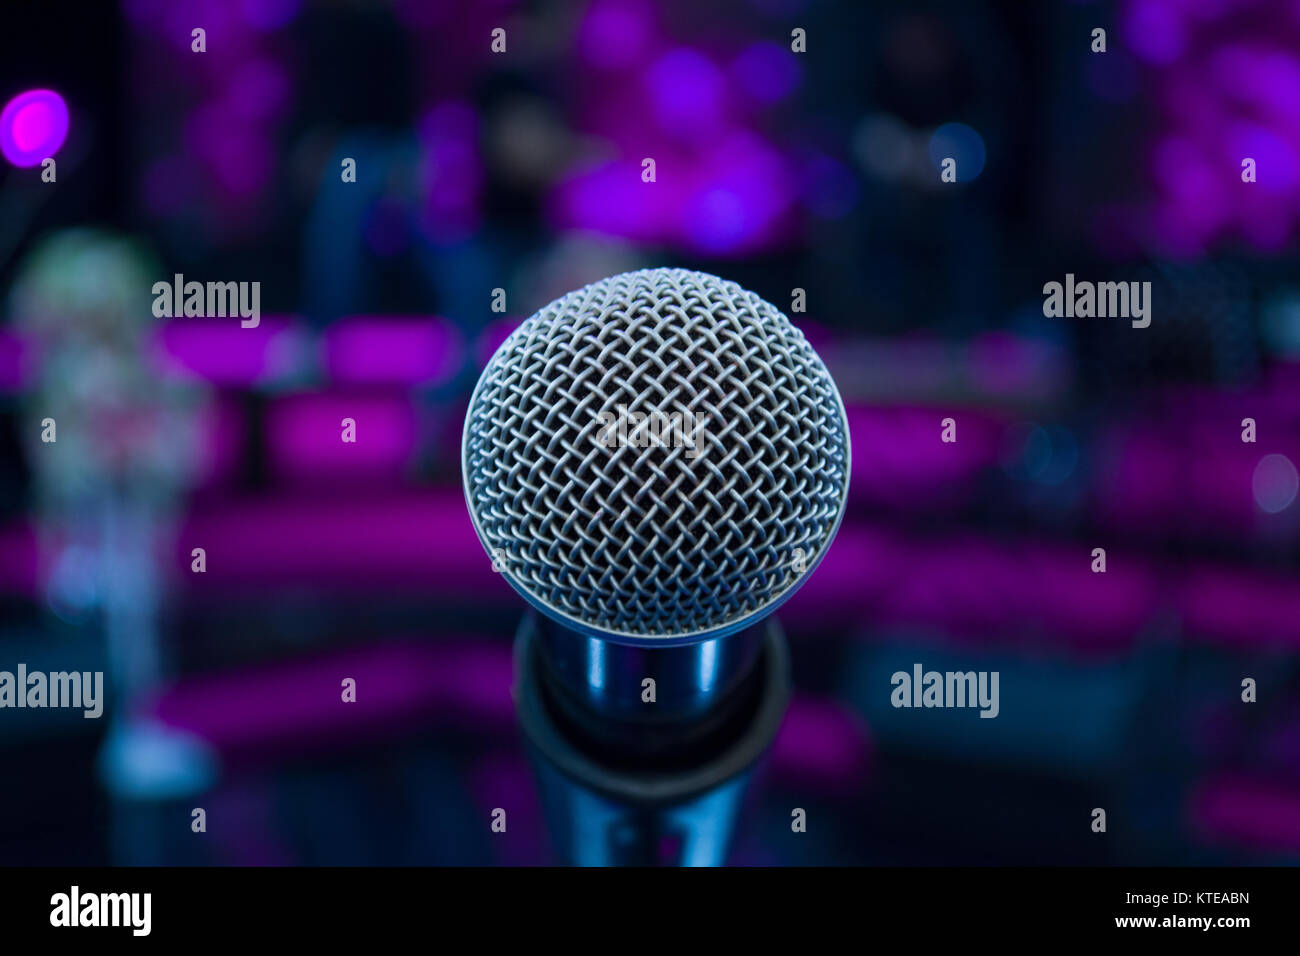 Audio Microphone Against Background Stock Photos & Audio Microphone